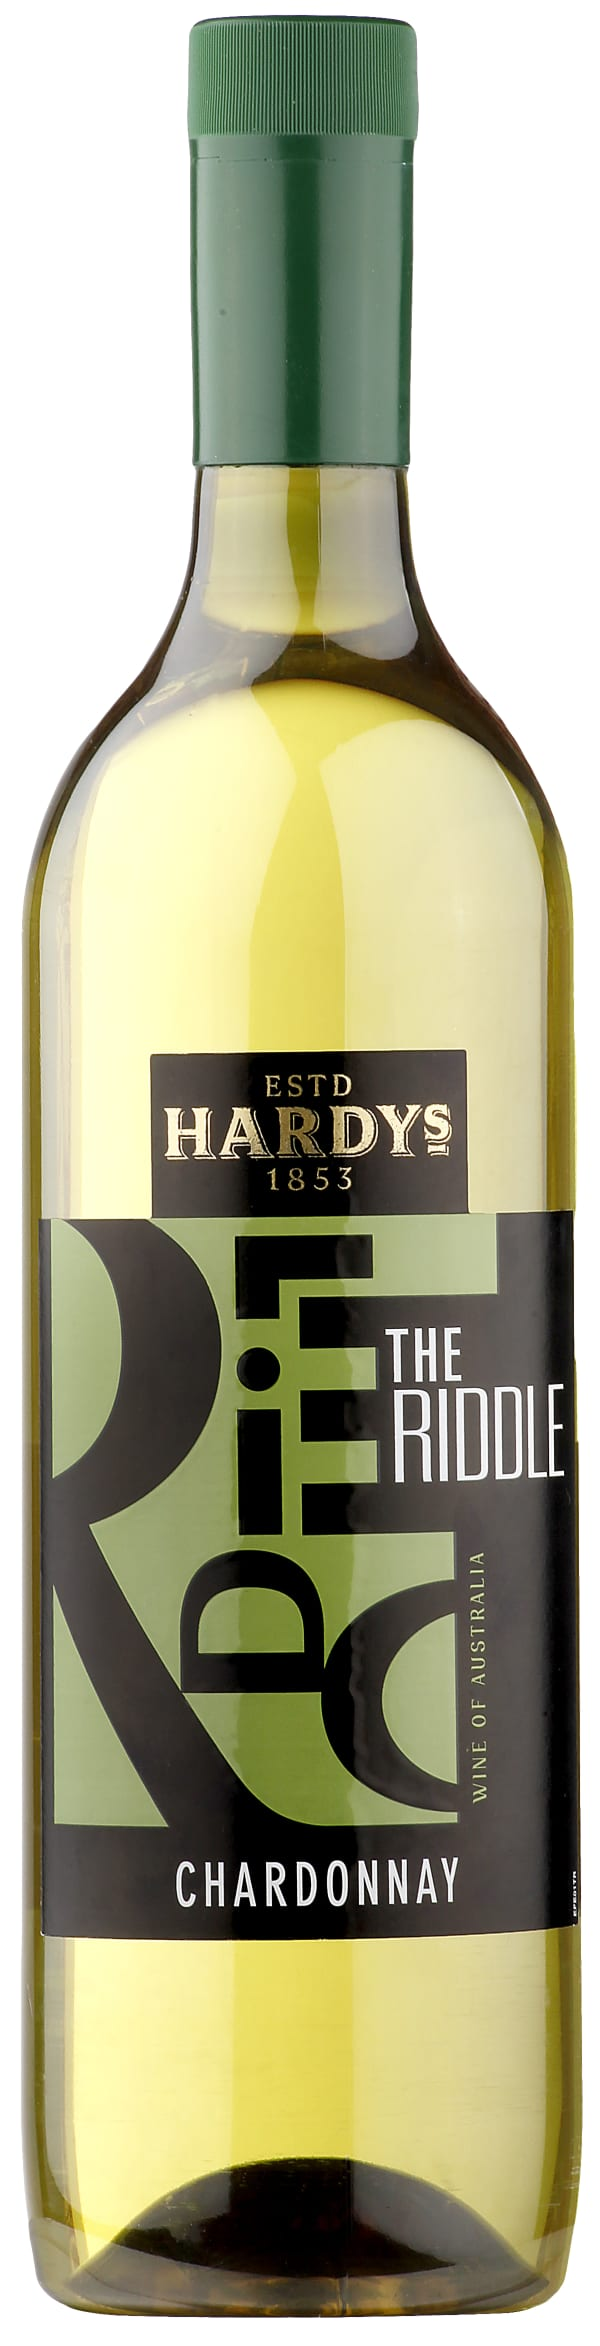 Hardys The Riddle Chardonnay 2016 plastic bottle